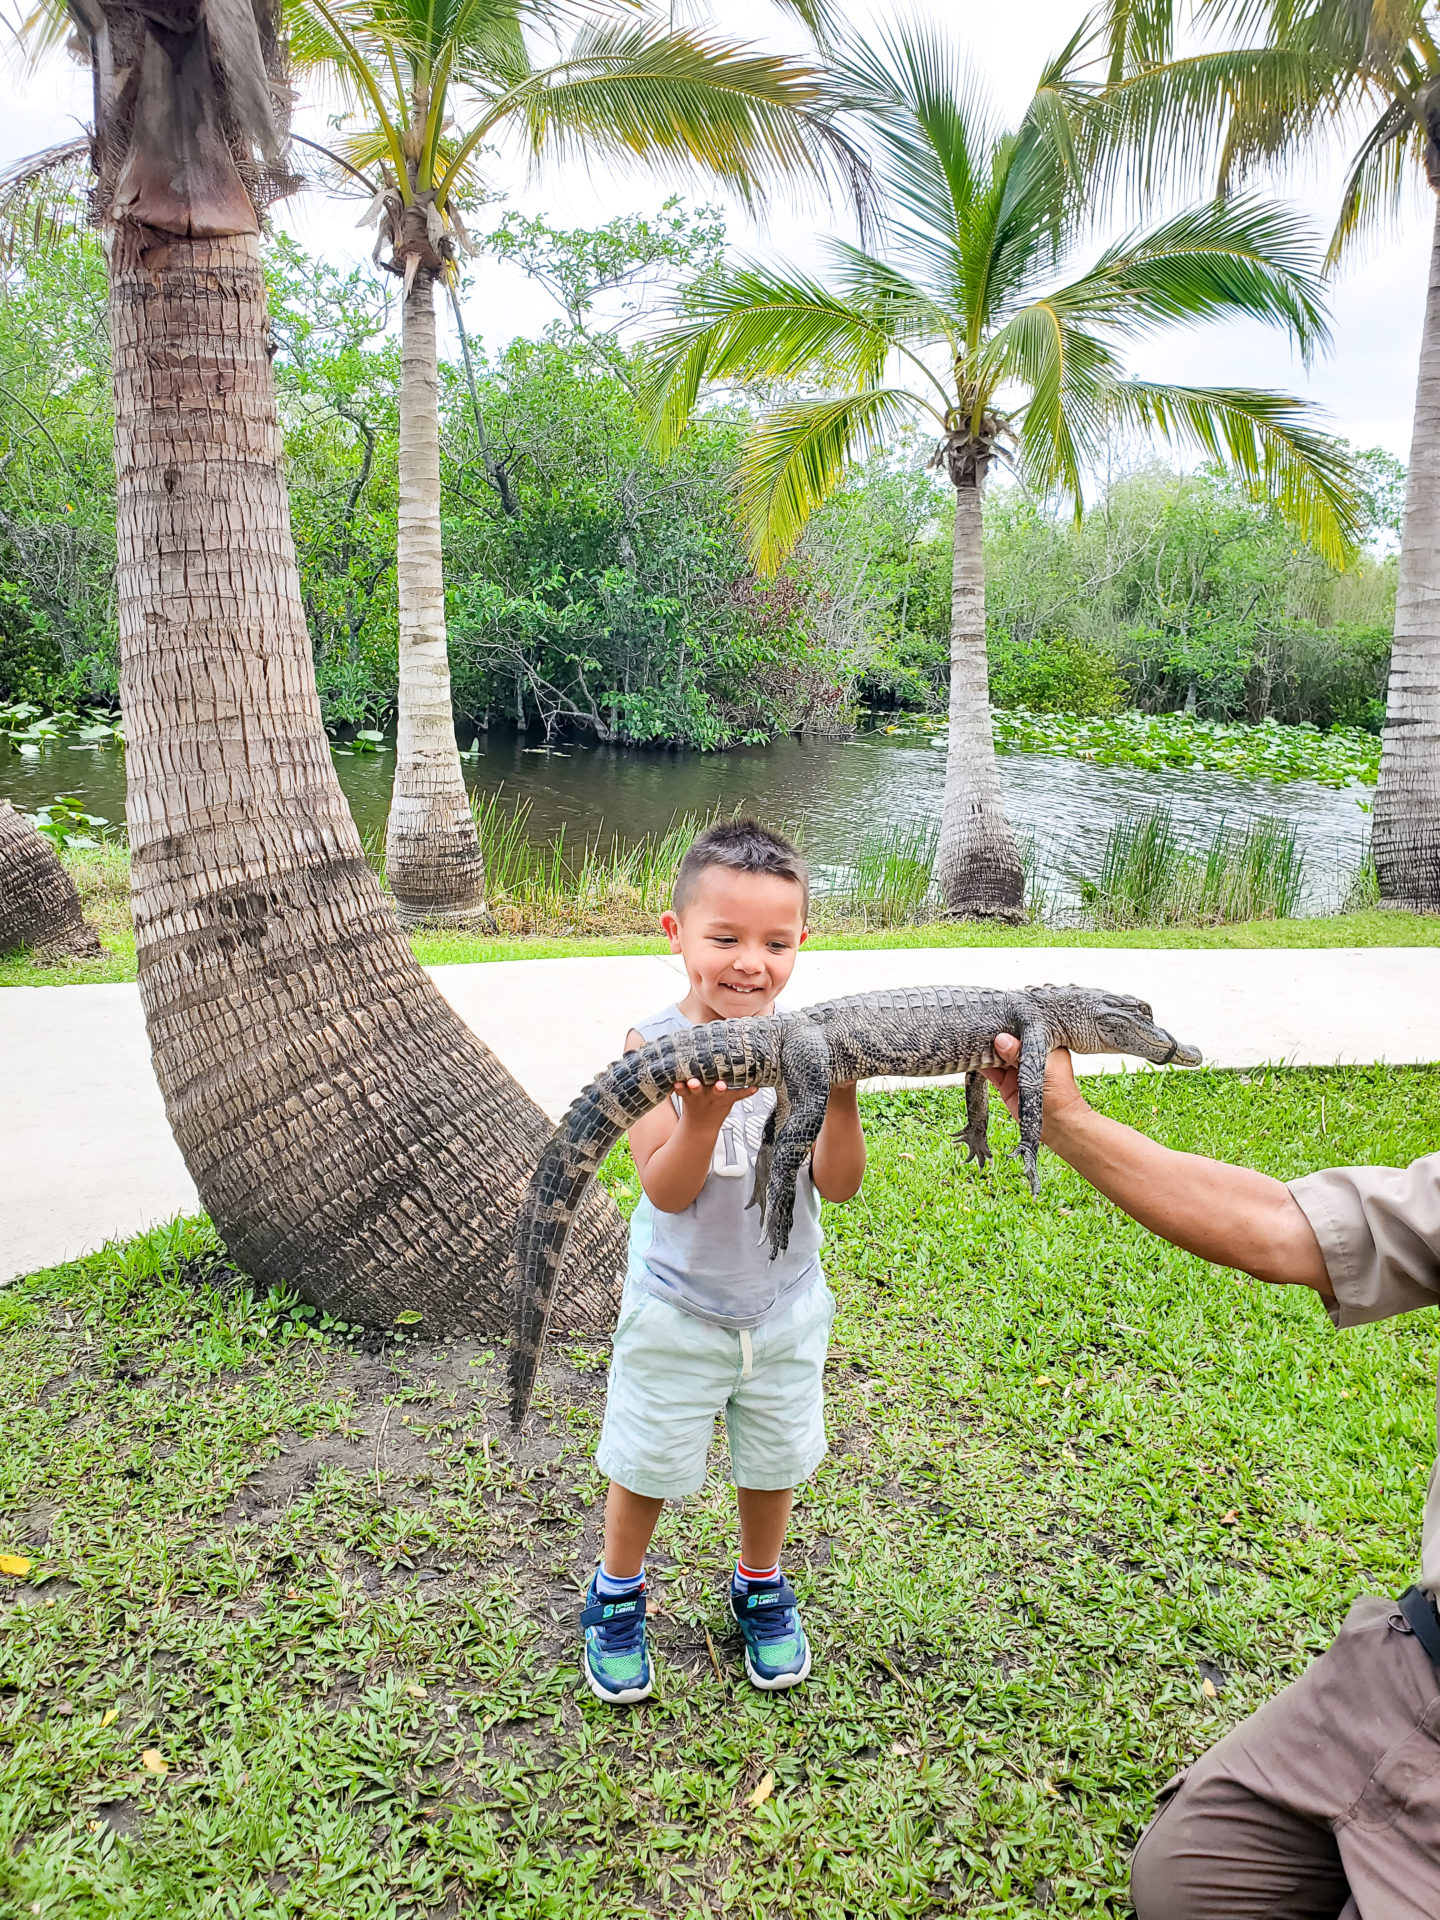 Liam Holding a Baby Alligator.